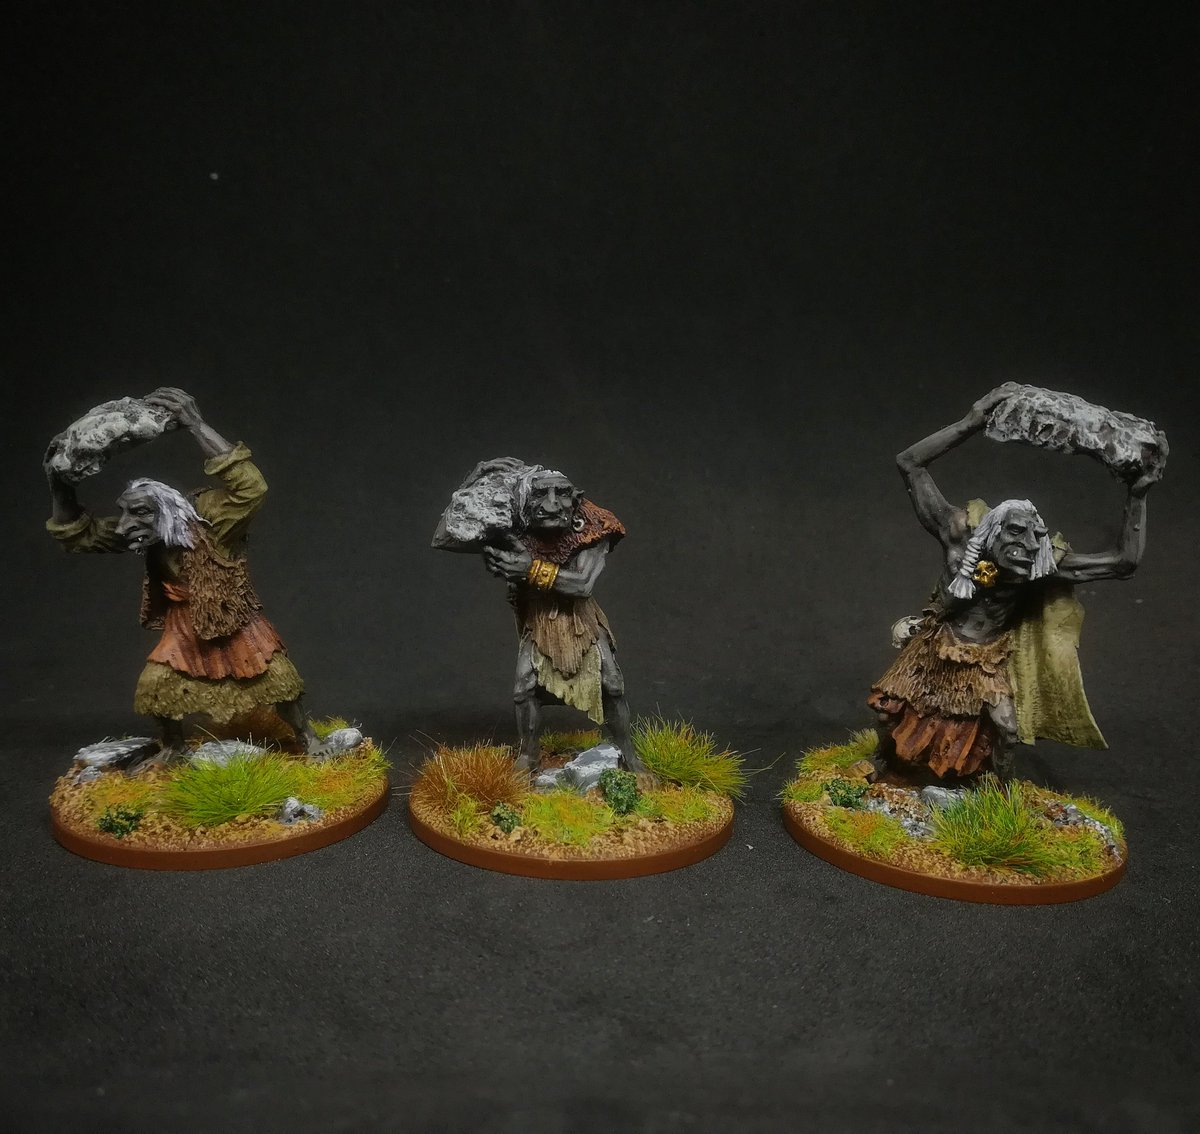 Trolls from #ralparthaminiatures https://t.co/WC5OokwWtg